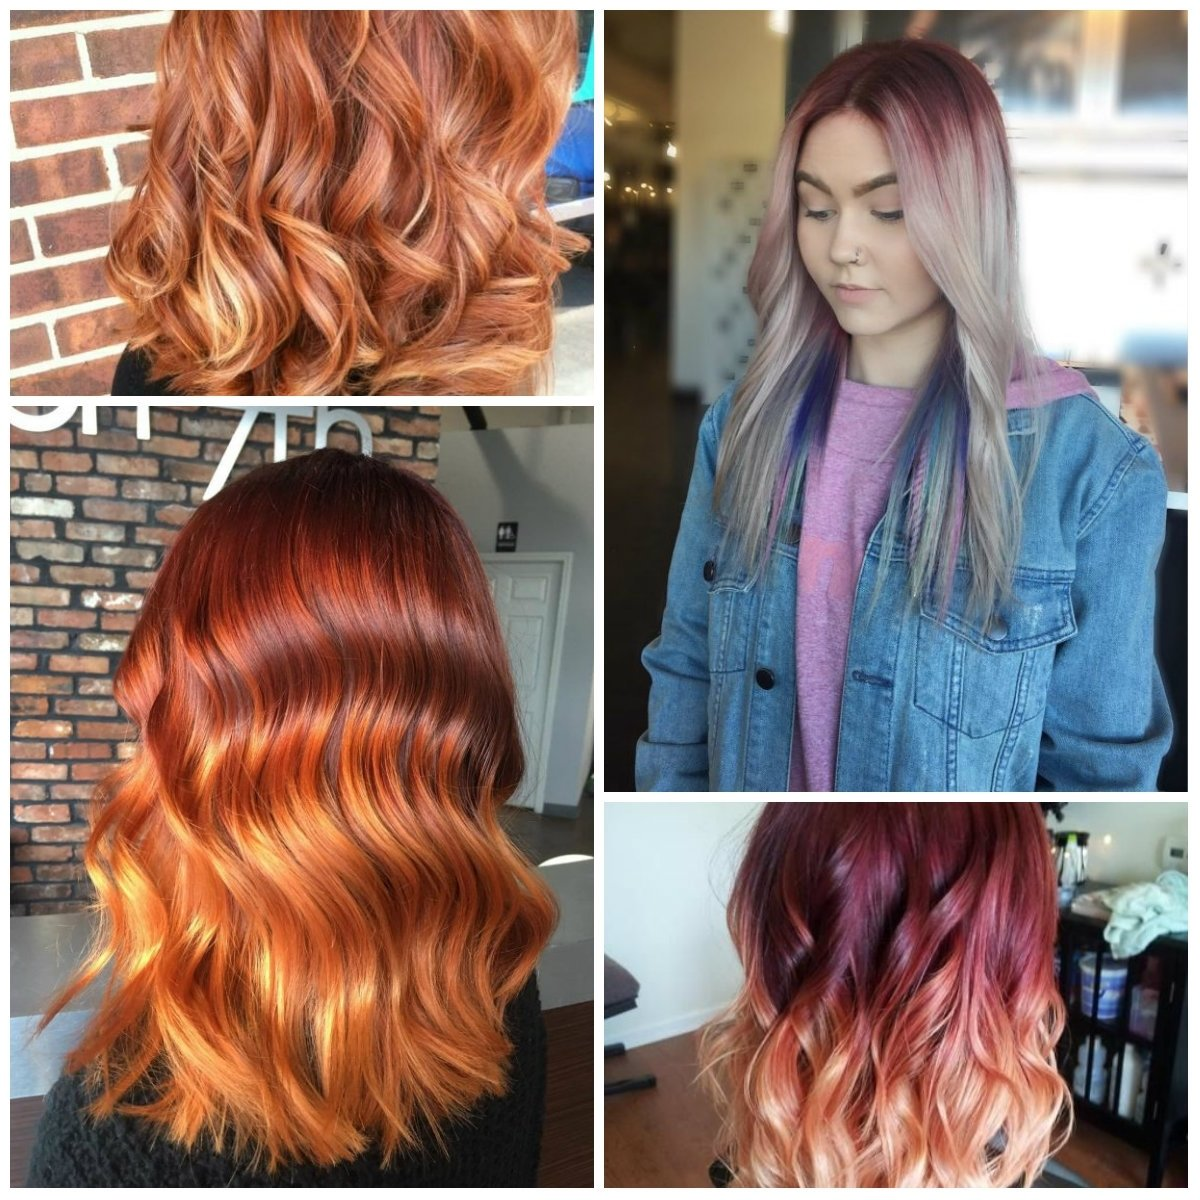 10 Amazing Red Blonde Brown Hair Color Ideas red blonde hair color ideas for 2017 best hair color ideas 7 2020